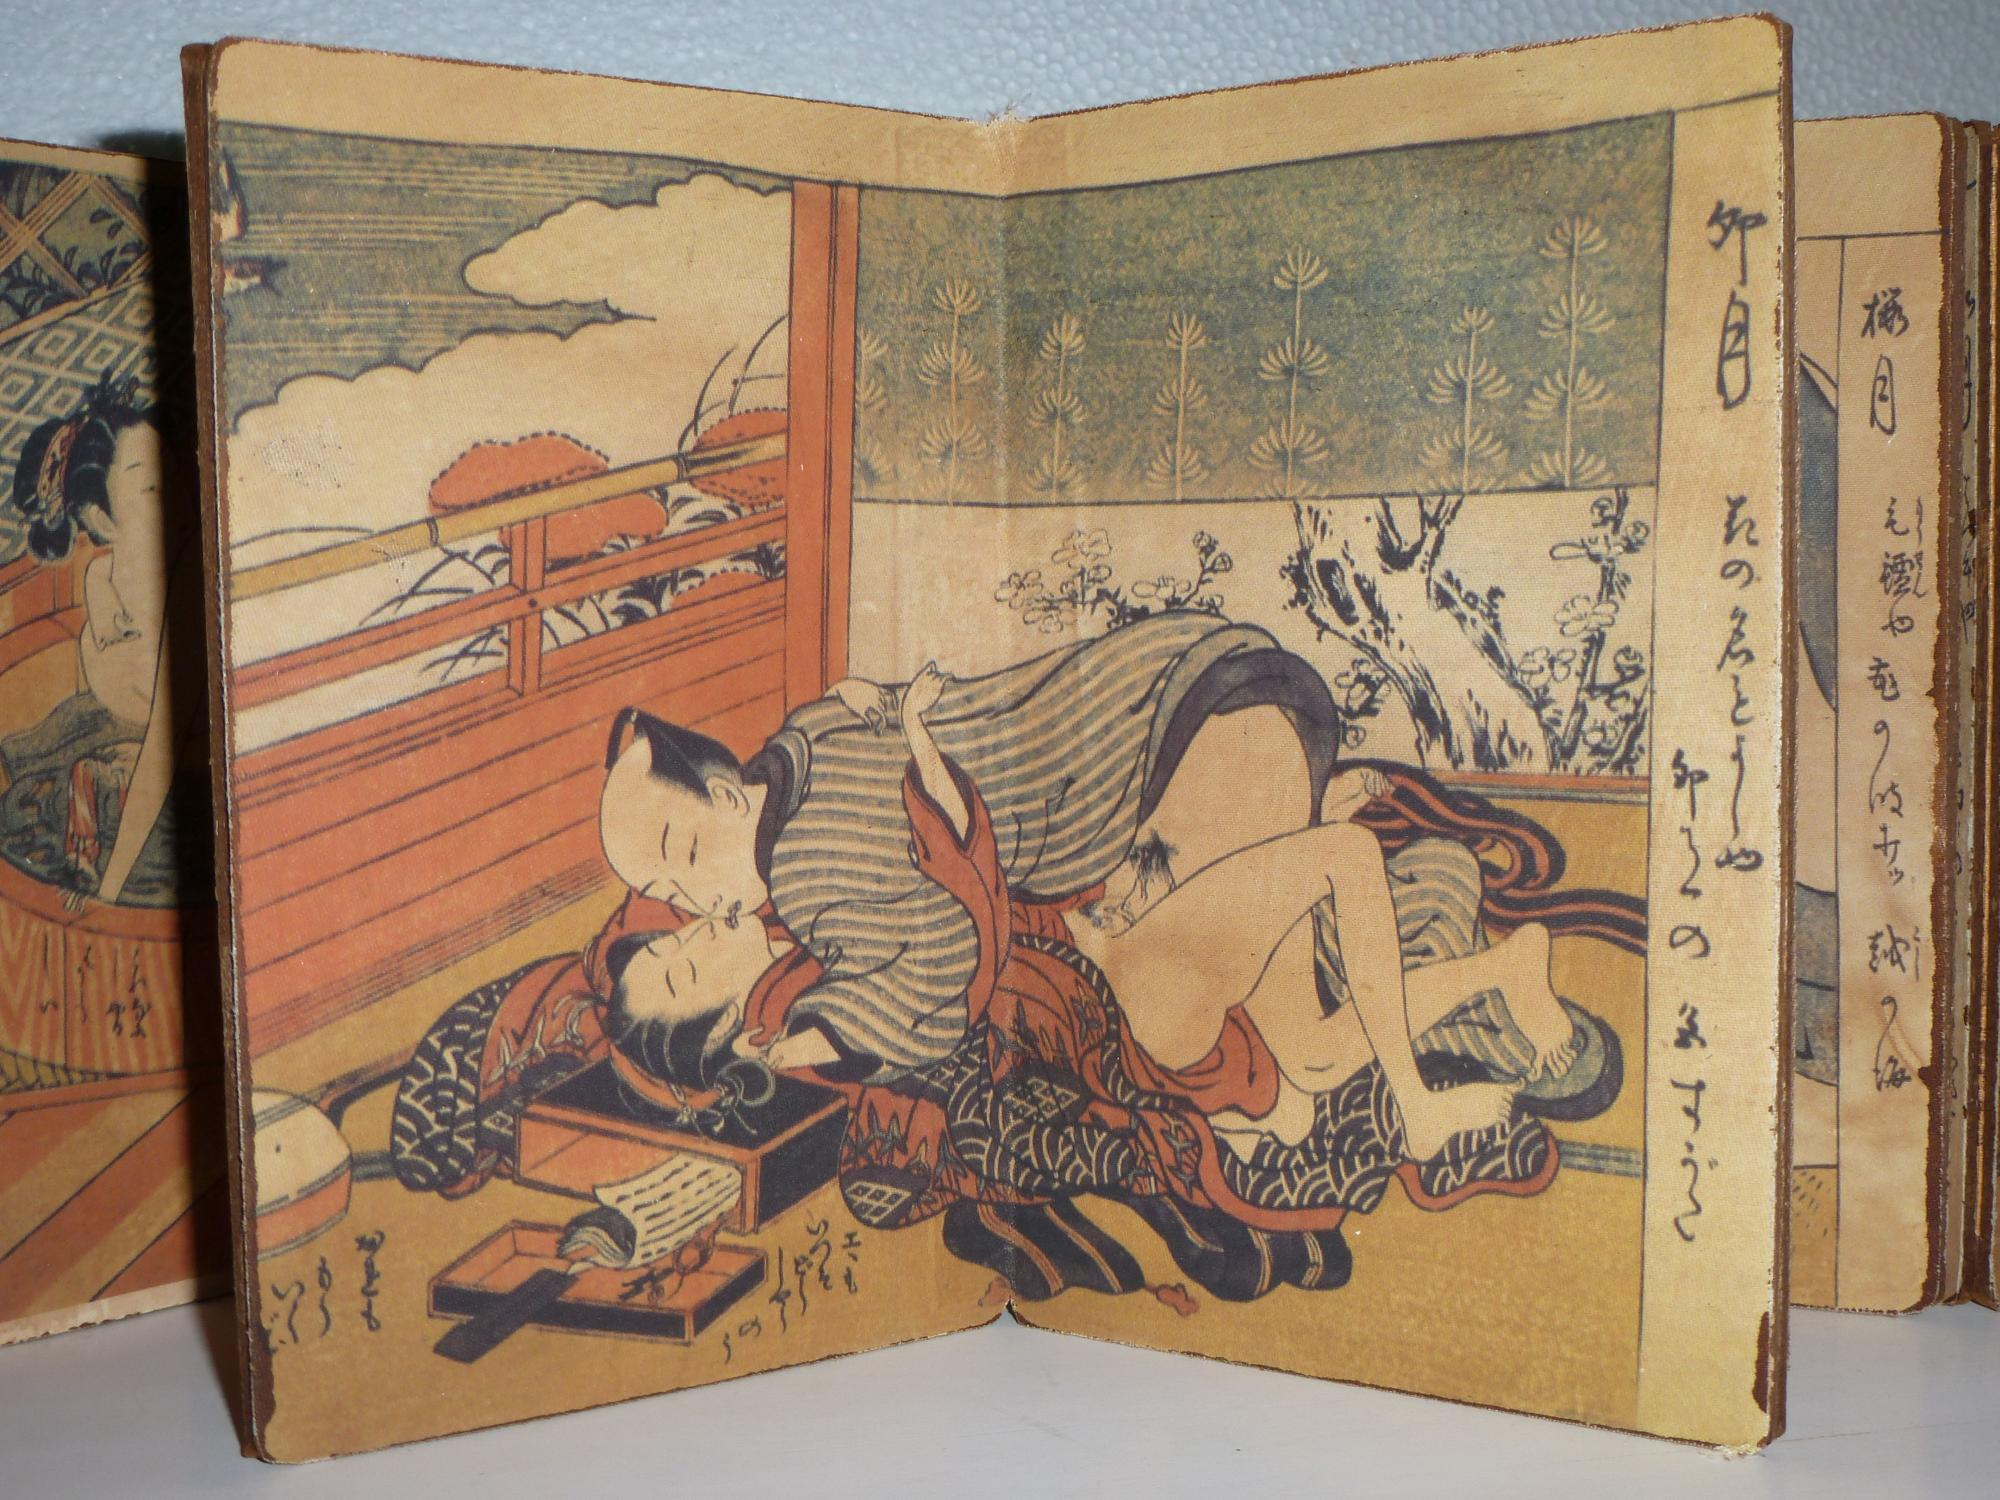 Chinese Erotica, Vintage Chinese Pillow Book, Shunga, C By -9343